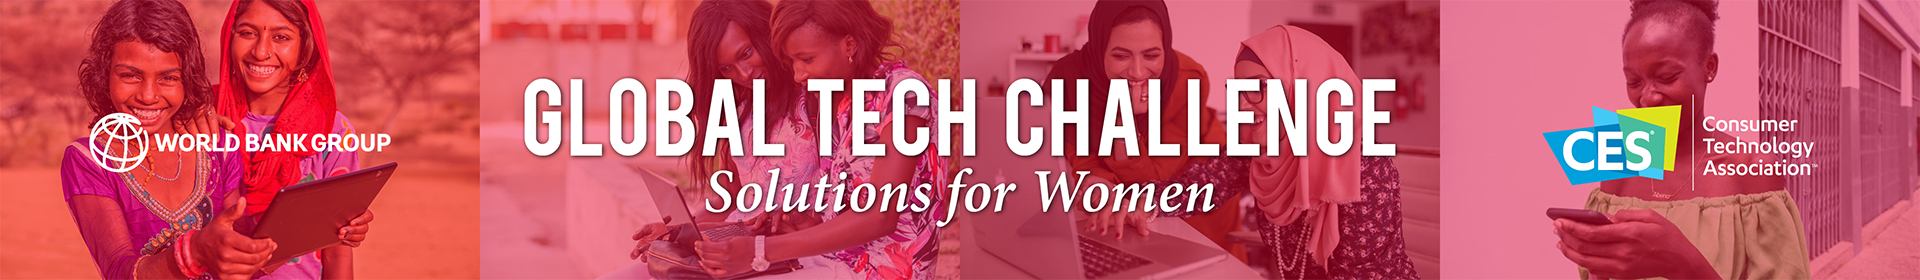 Global Tech Challenge: Solutions for Women Event Banner